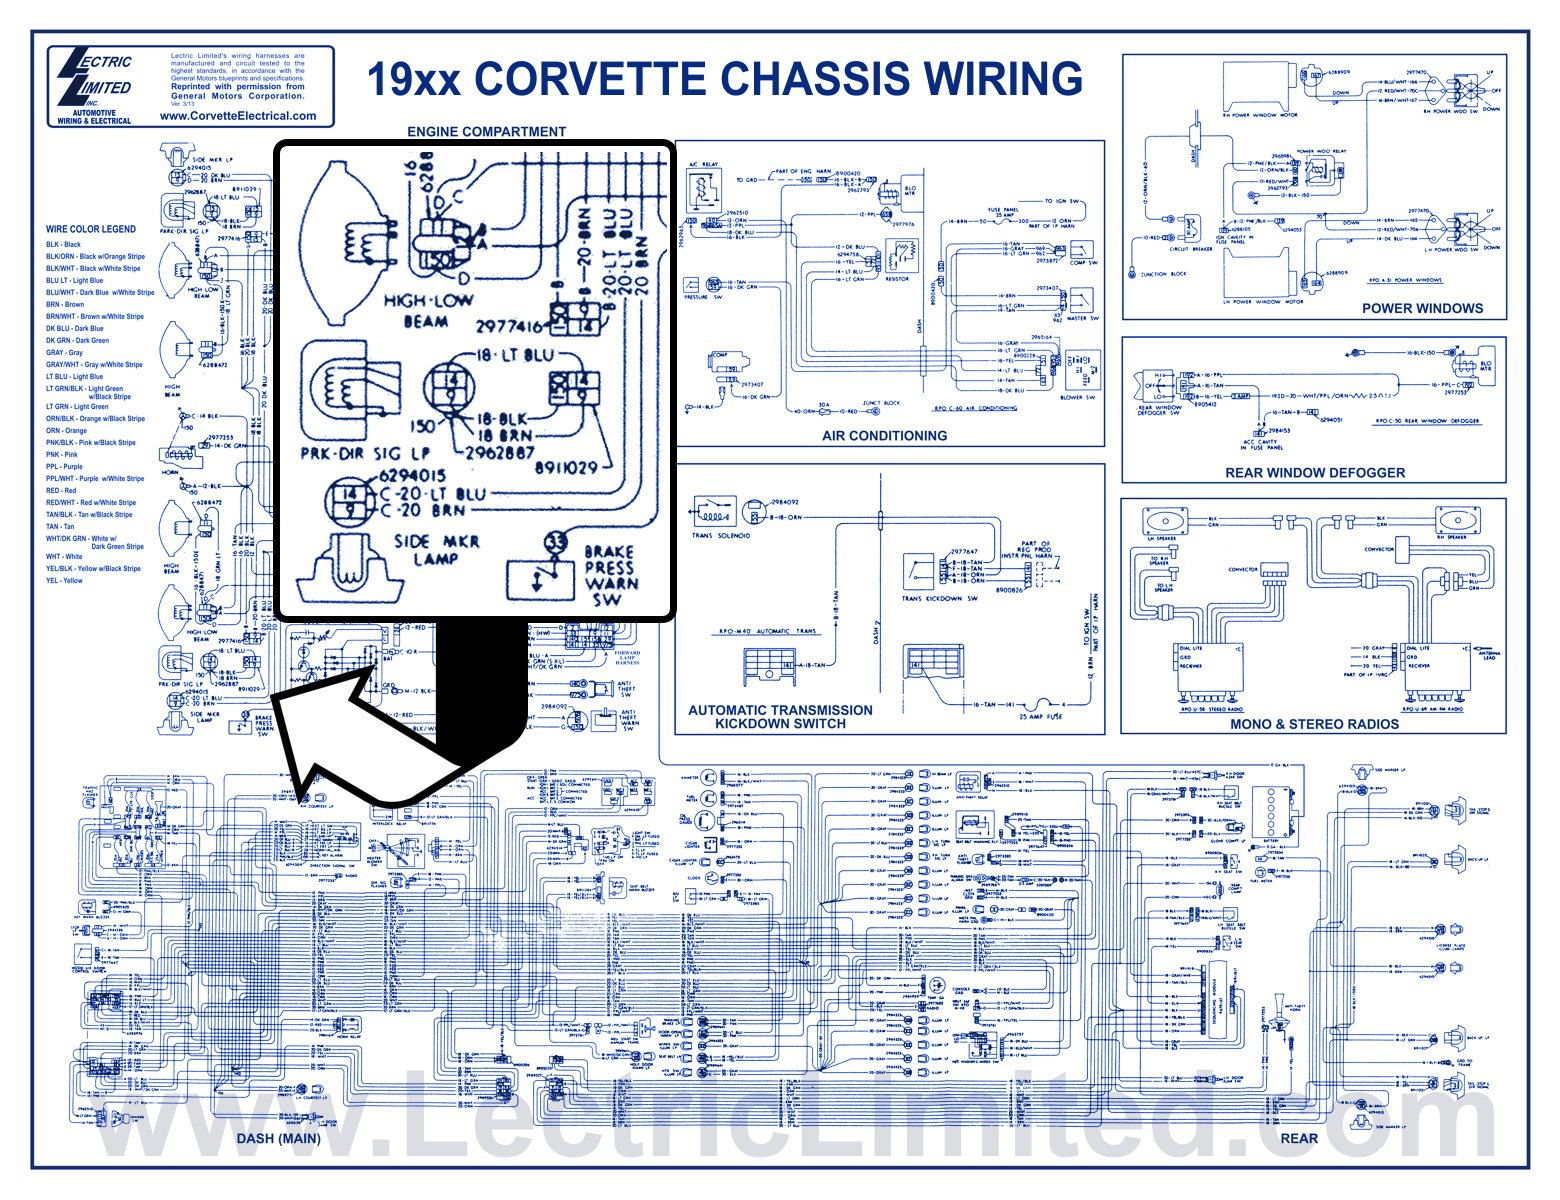 1972 camaro electrical schematic wiring library Chevy Distributor Wiring Diagram 1953 82 corvette and 1967 72 camaro laminated wiring diagrams